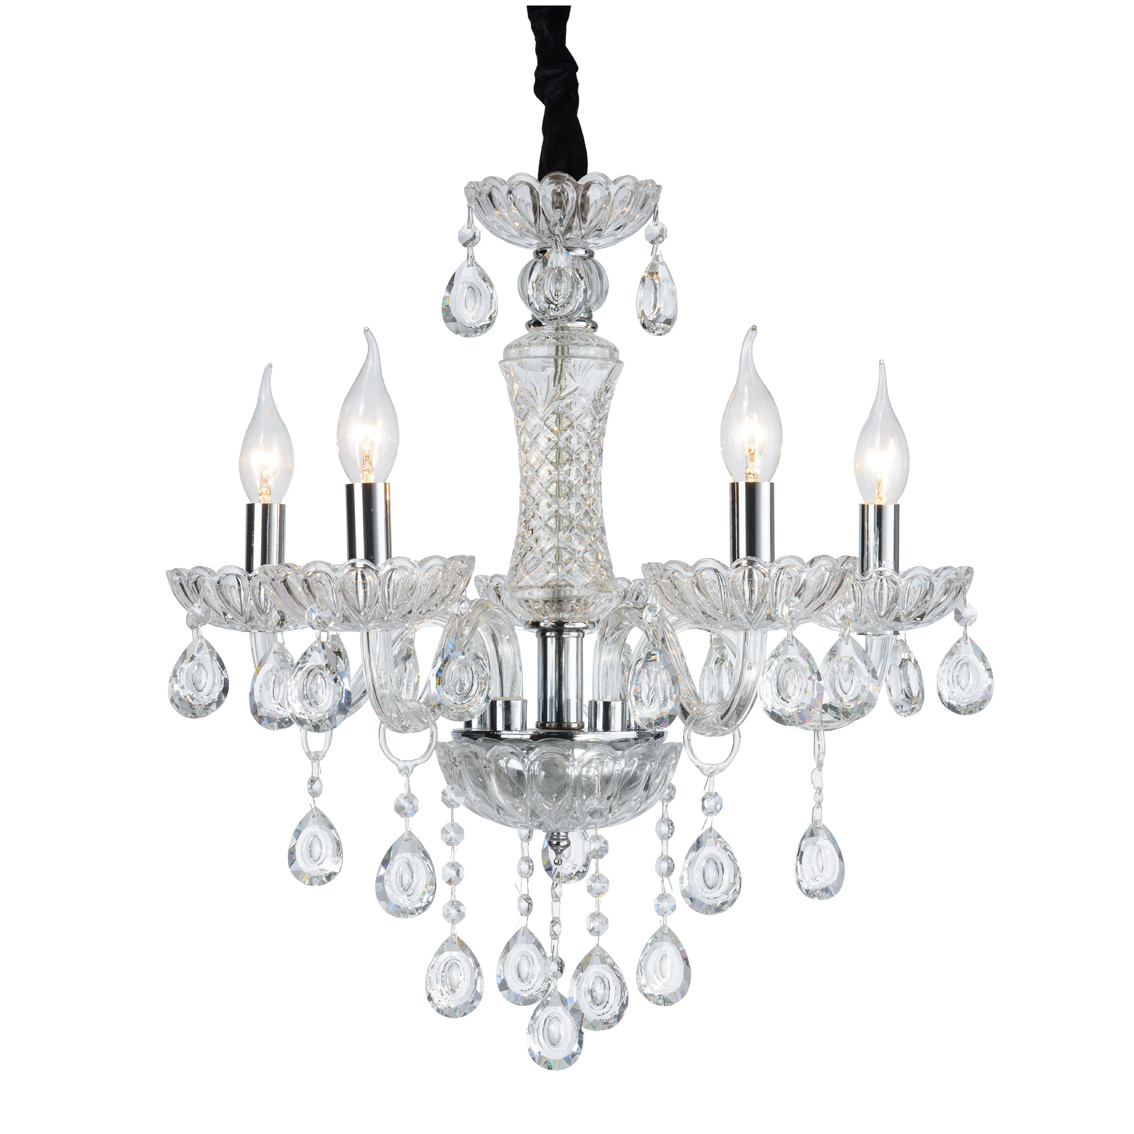 Chandelier ceiling Luxury Baroque Crystal Clear 5 Arms 2081-5